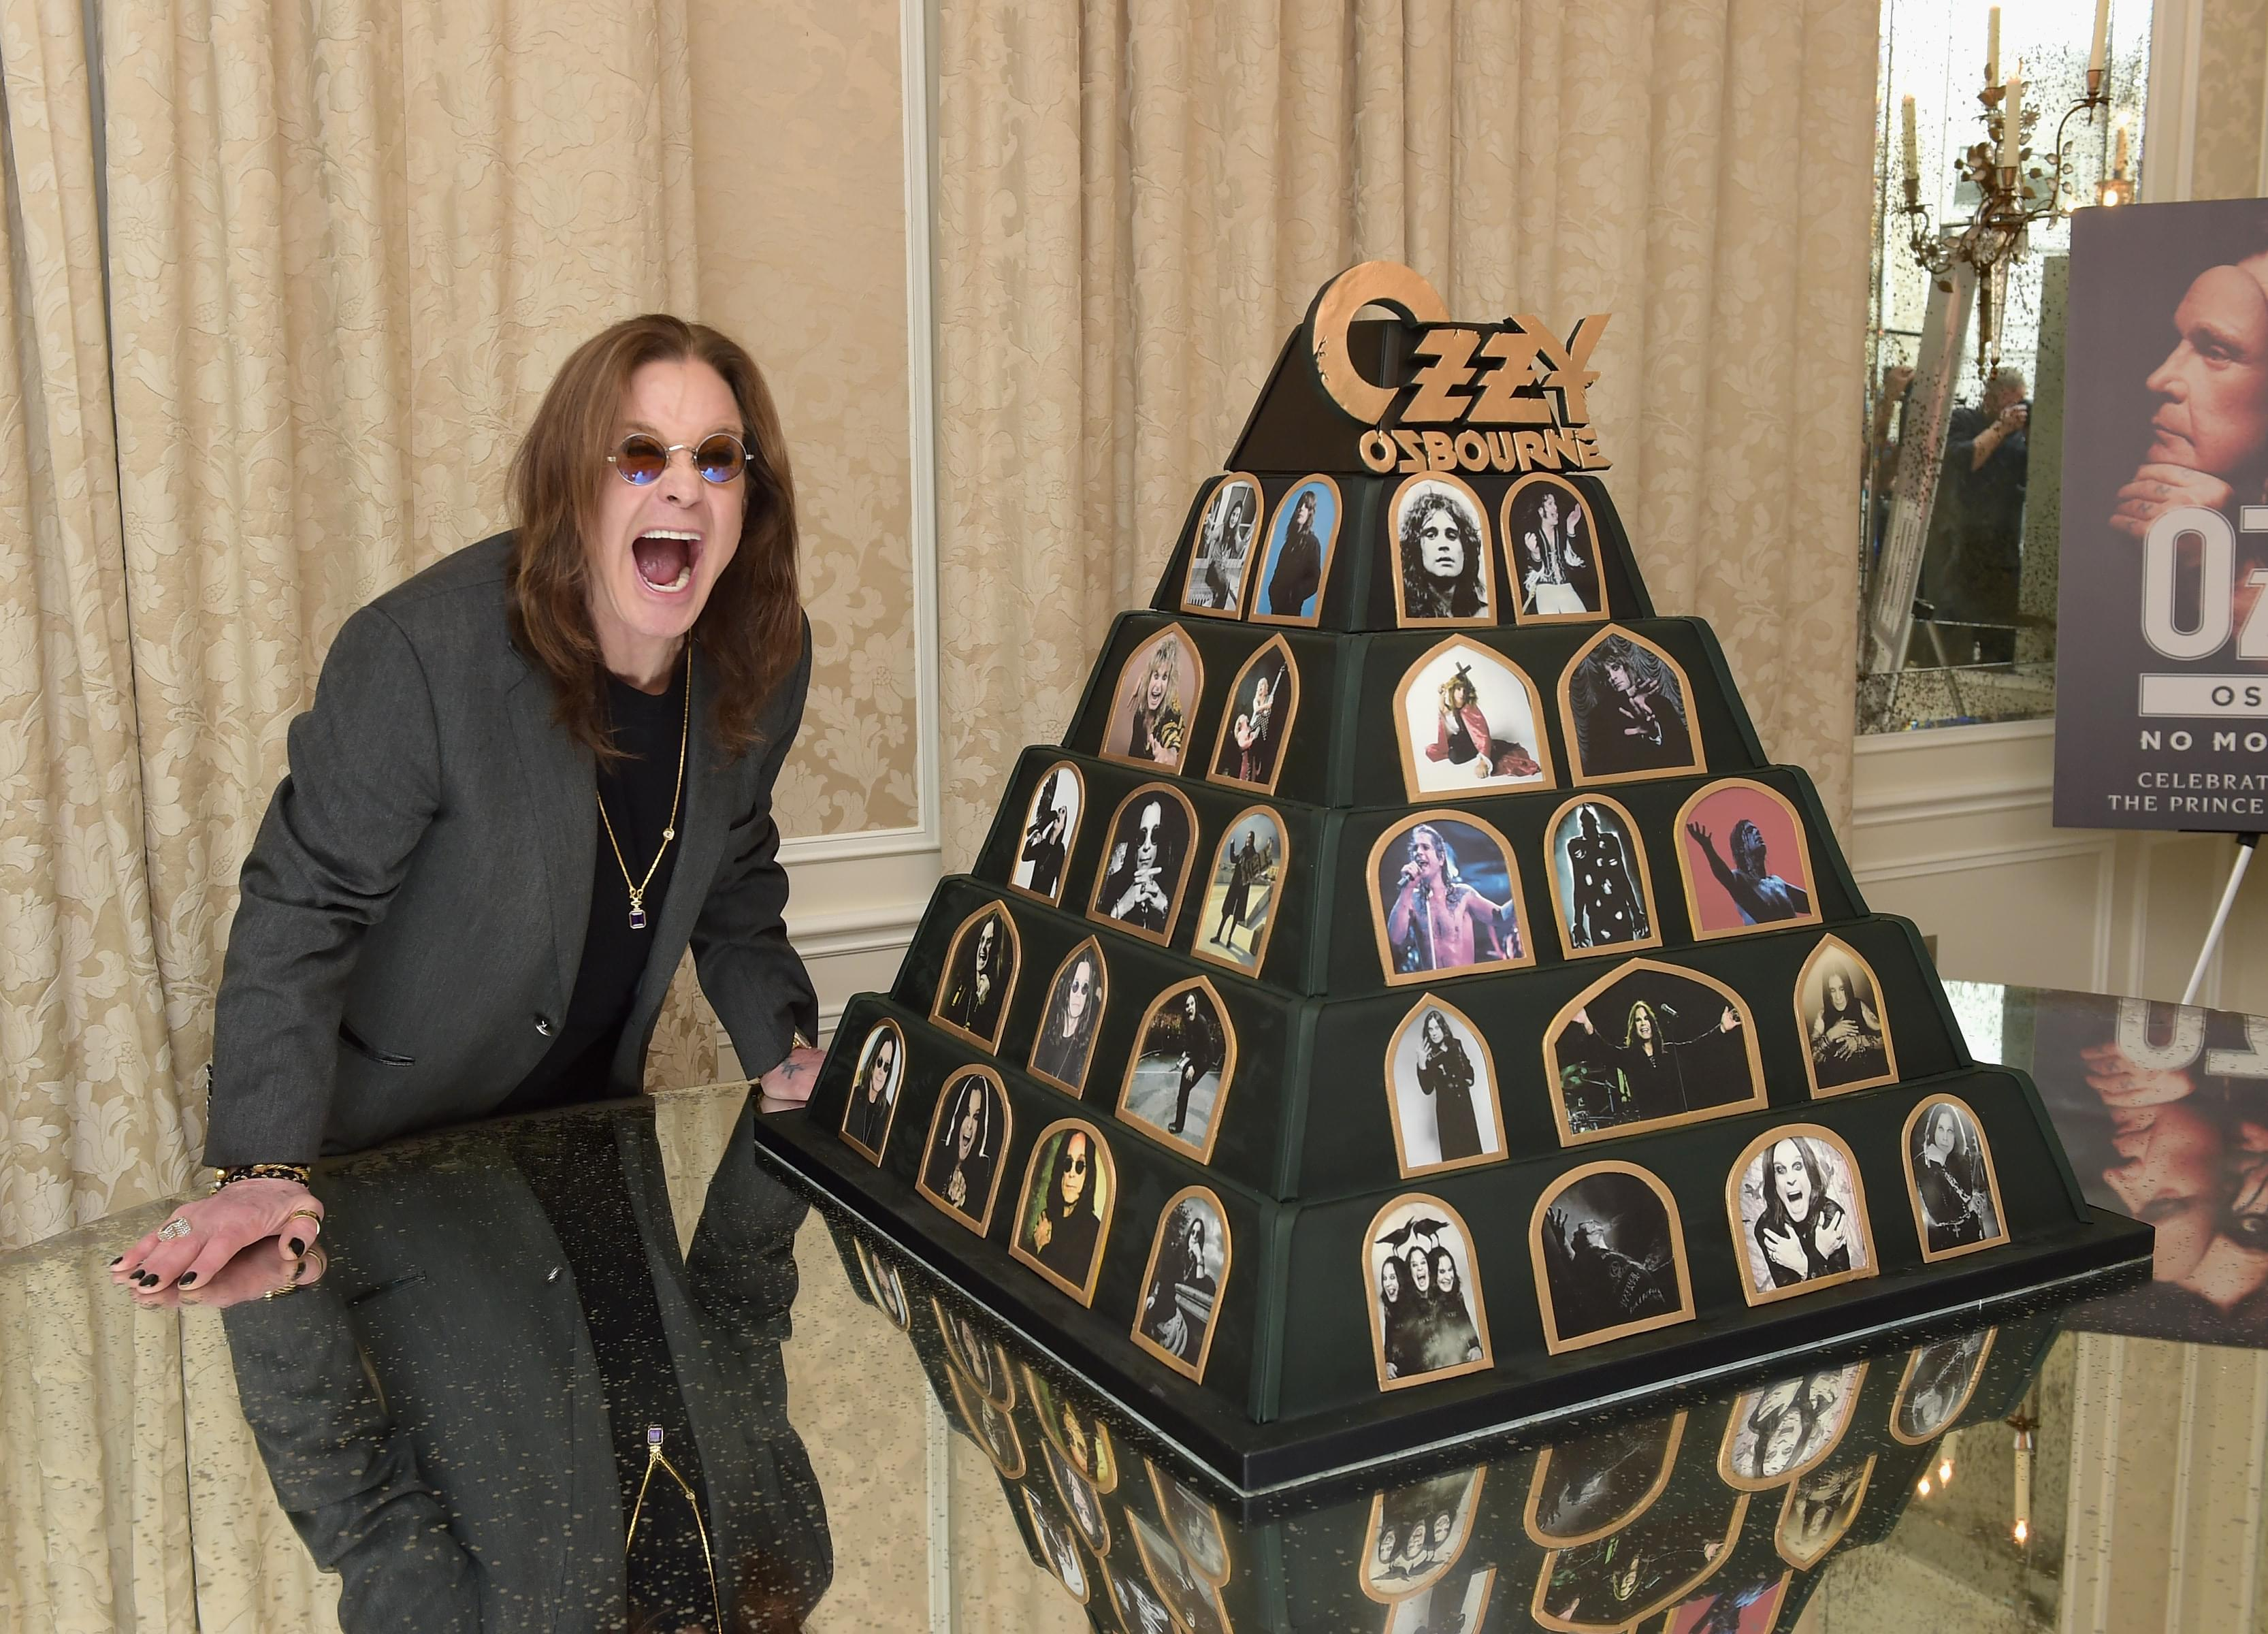 Ozzy Osbourne's New Album 'Ordinary Man' Available Now